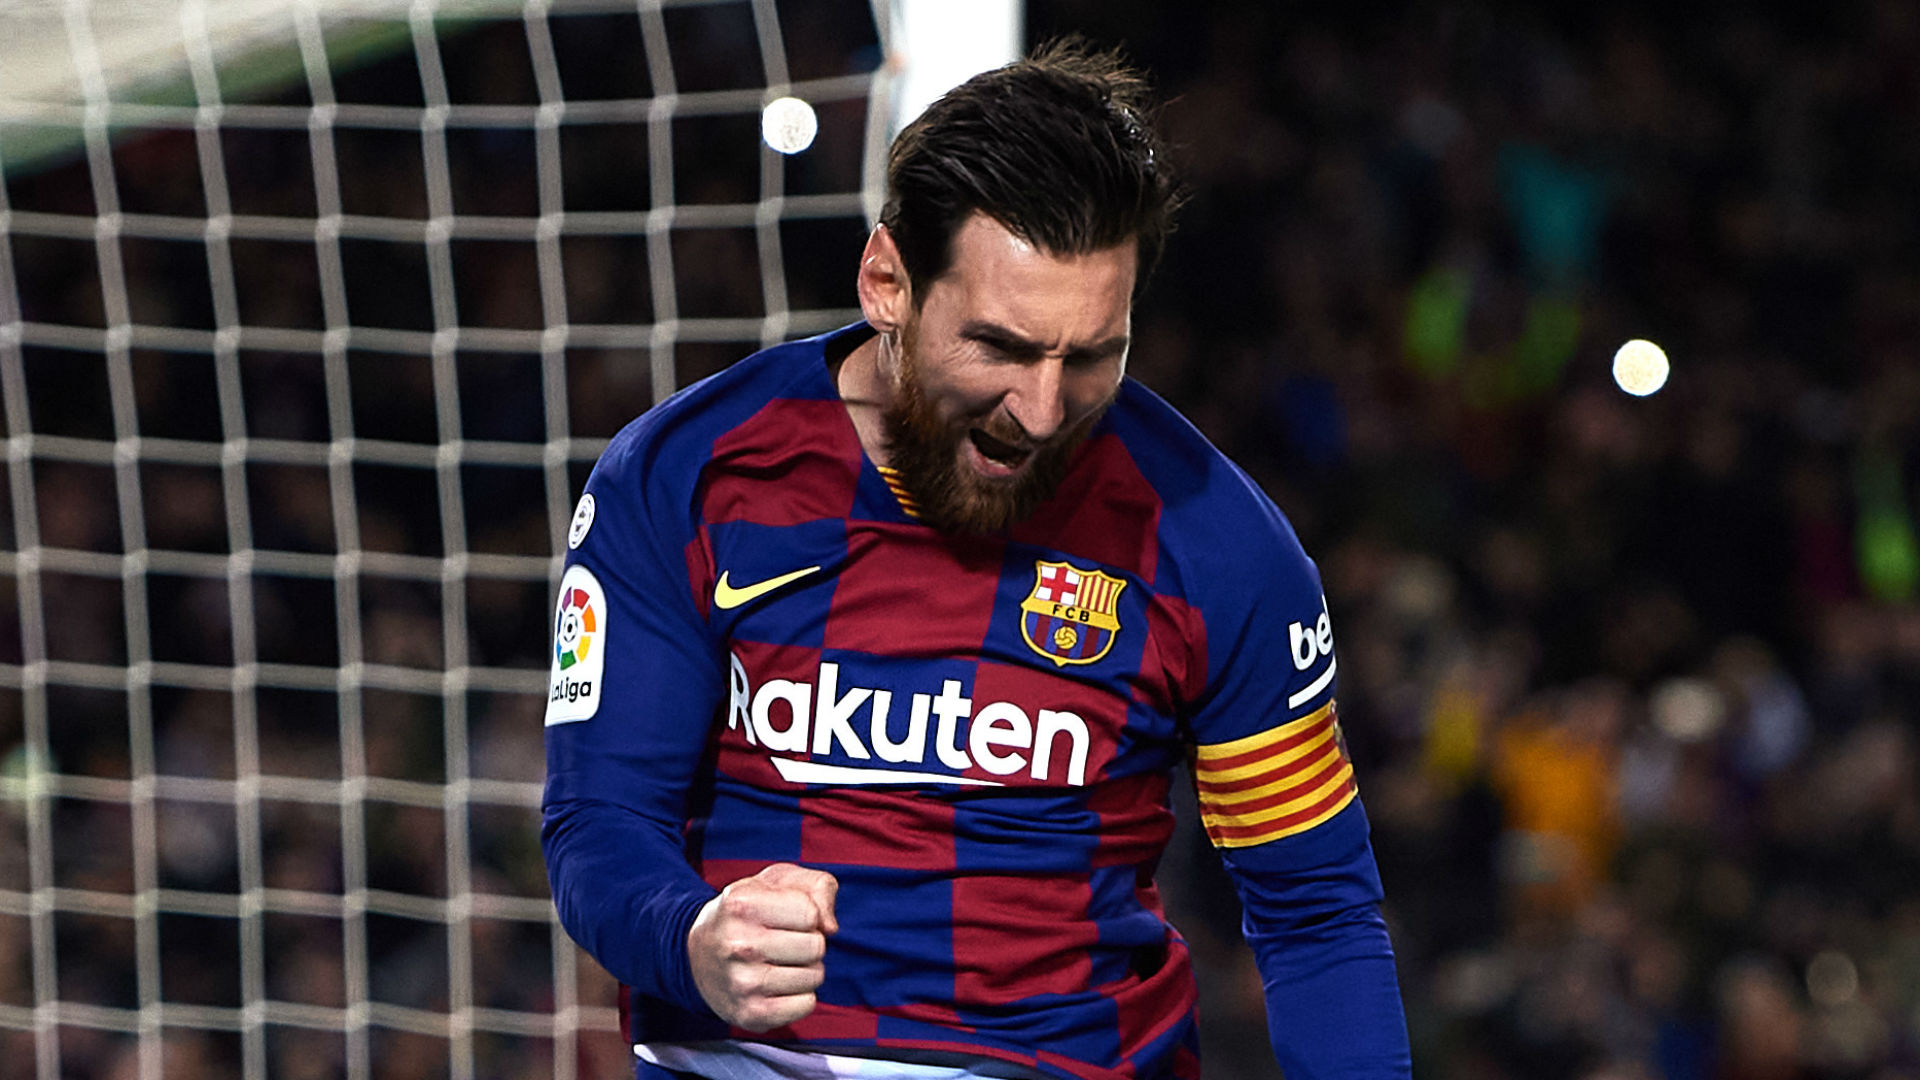 Barcelona edge out Real Madrid, UCL heartbreak for Getafe - Stats Perform AI completes the season